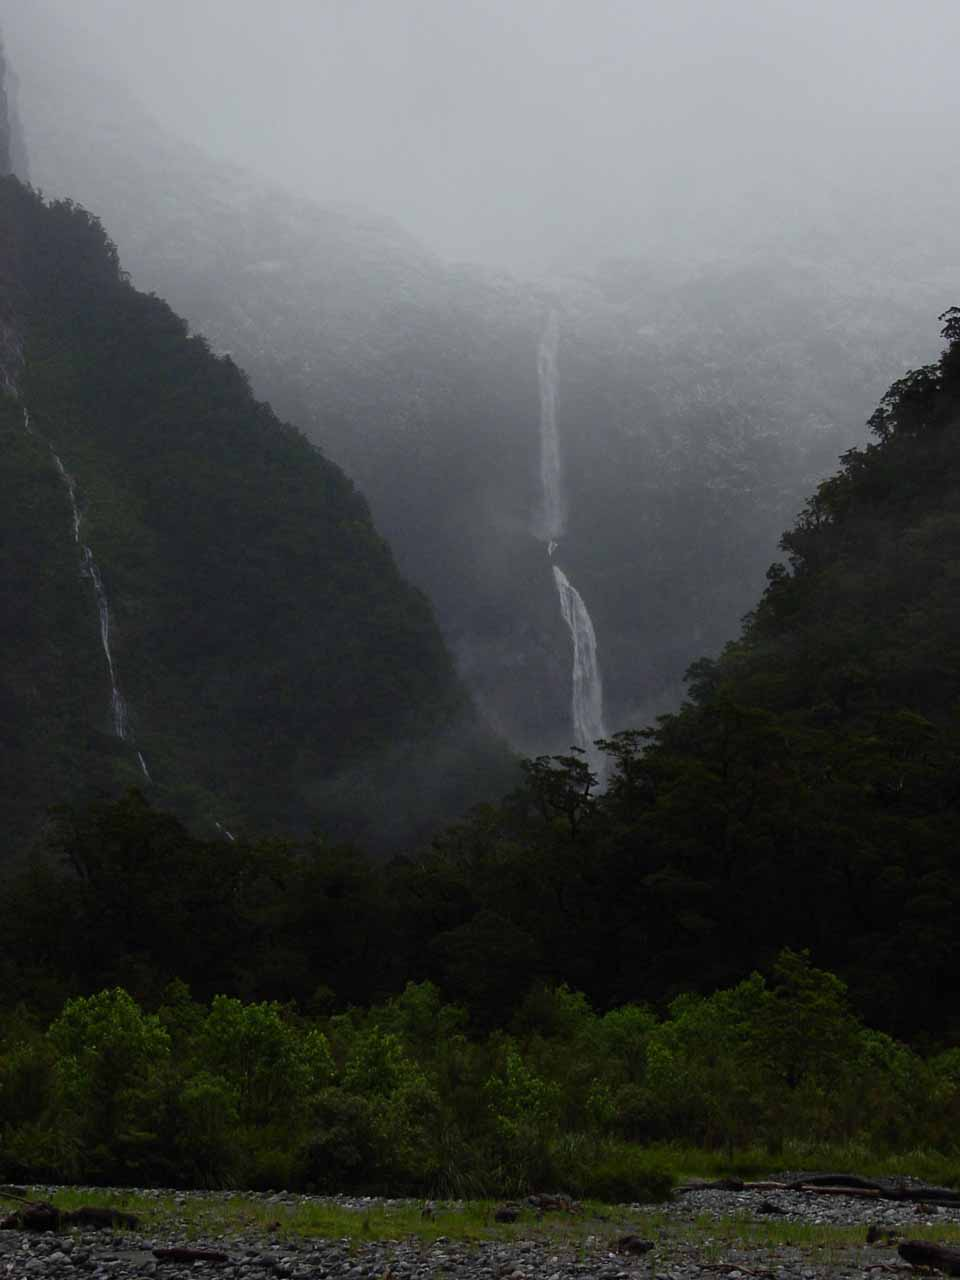 Distant view of Sutherland Falls shrouded in rain clouds from the Milford Track on Day 4